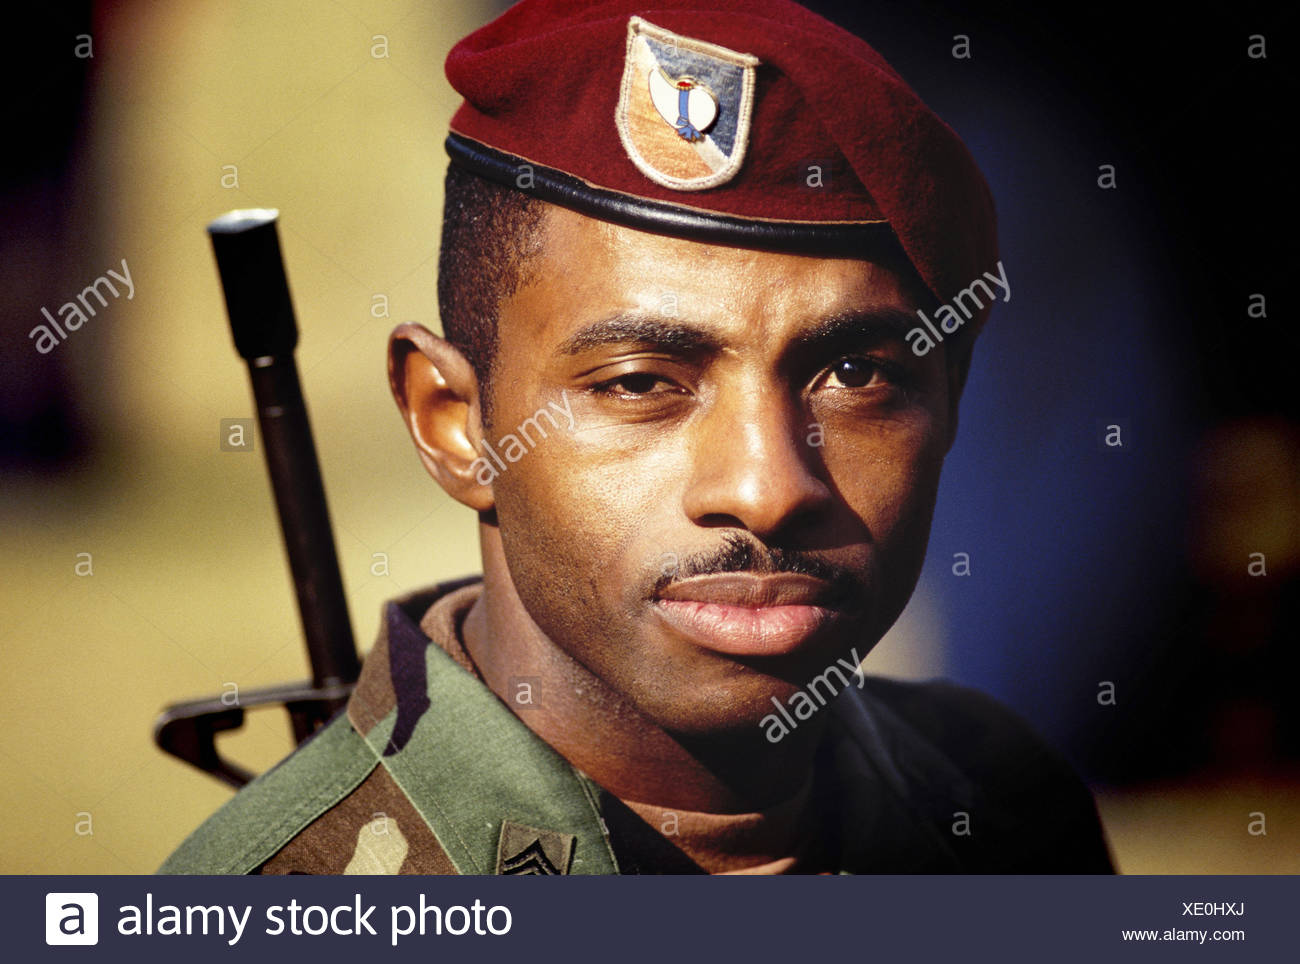 566acd45 Red Beret Uniform Stock Photos & Red Beret Uniform Stock Images - Alamy